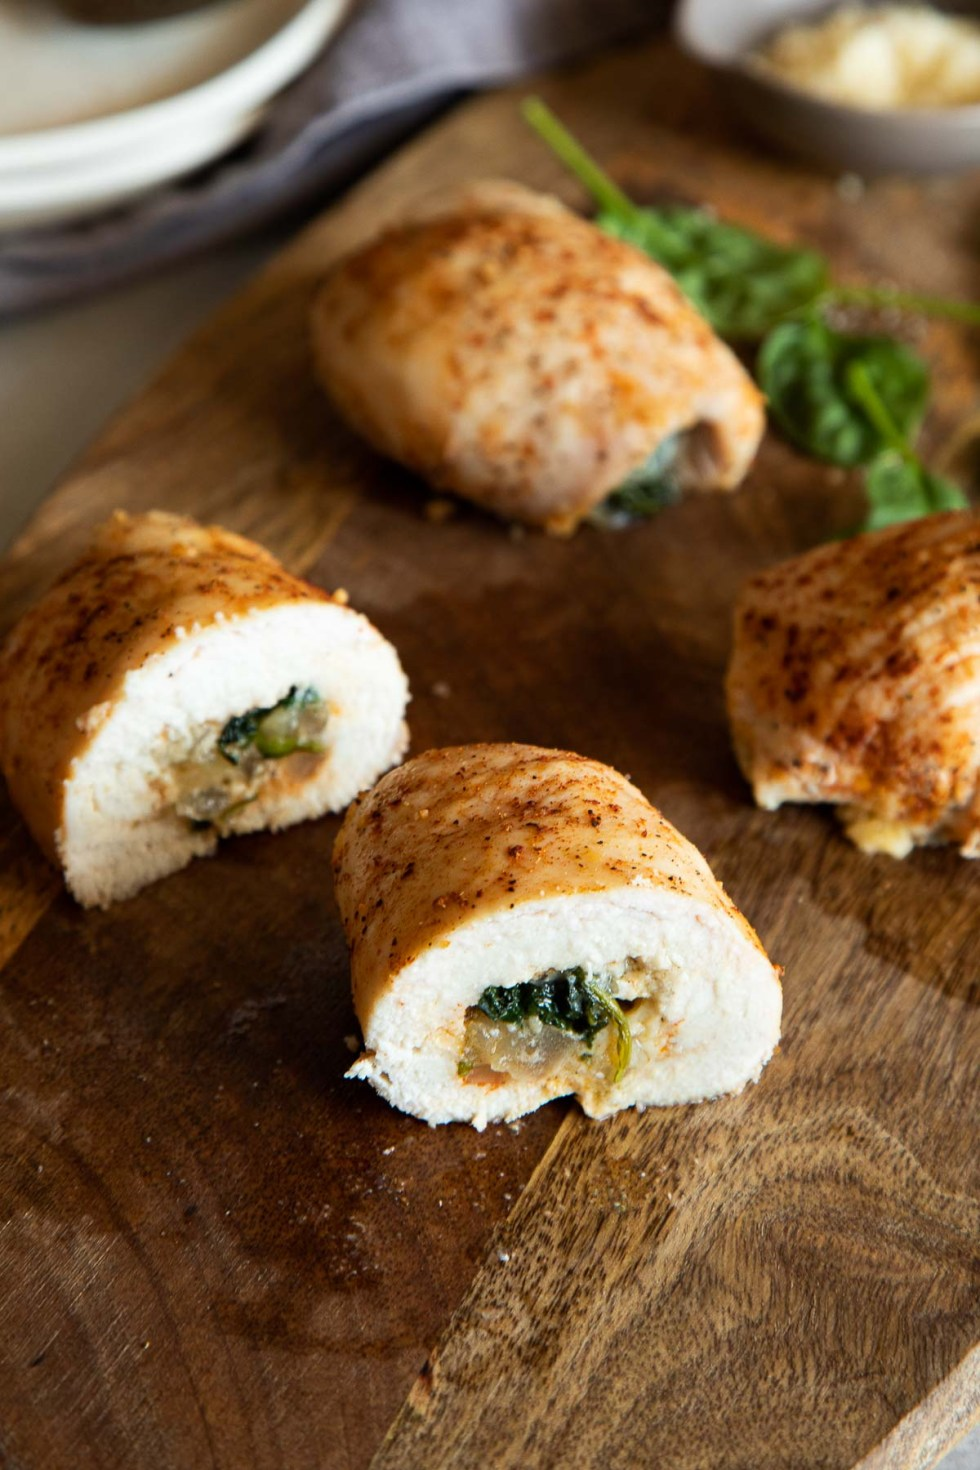 Parmesan Chicken Roll Ups - cut in half - view from side